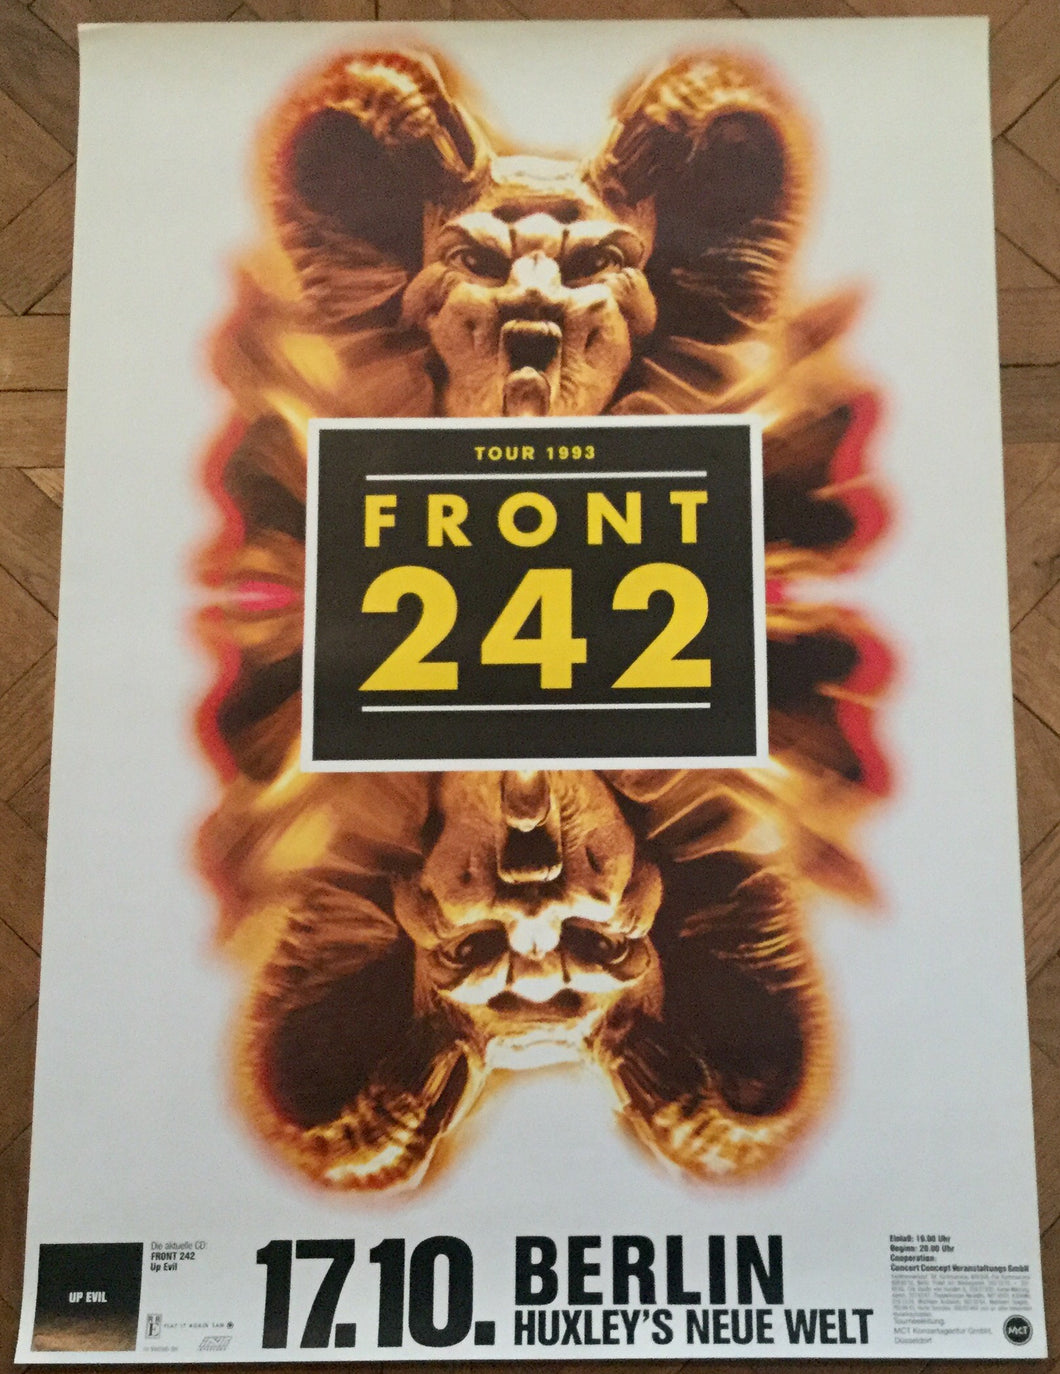 Front 242 Original Concert Tour Gig Poster Huxley's Neue Welt 17th Oct 1993